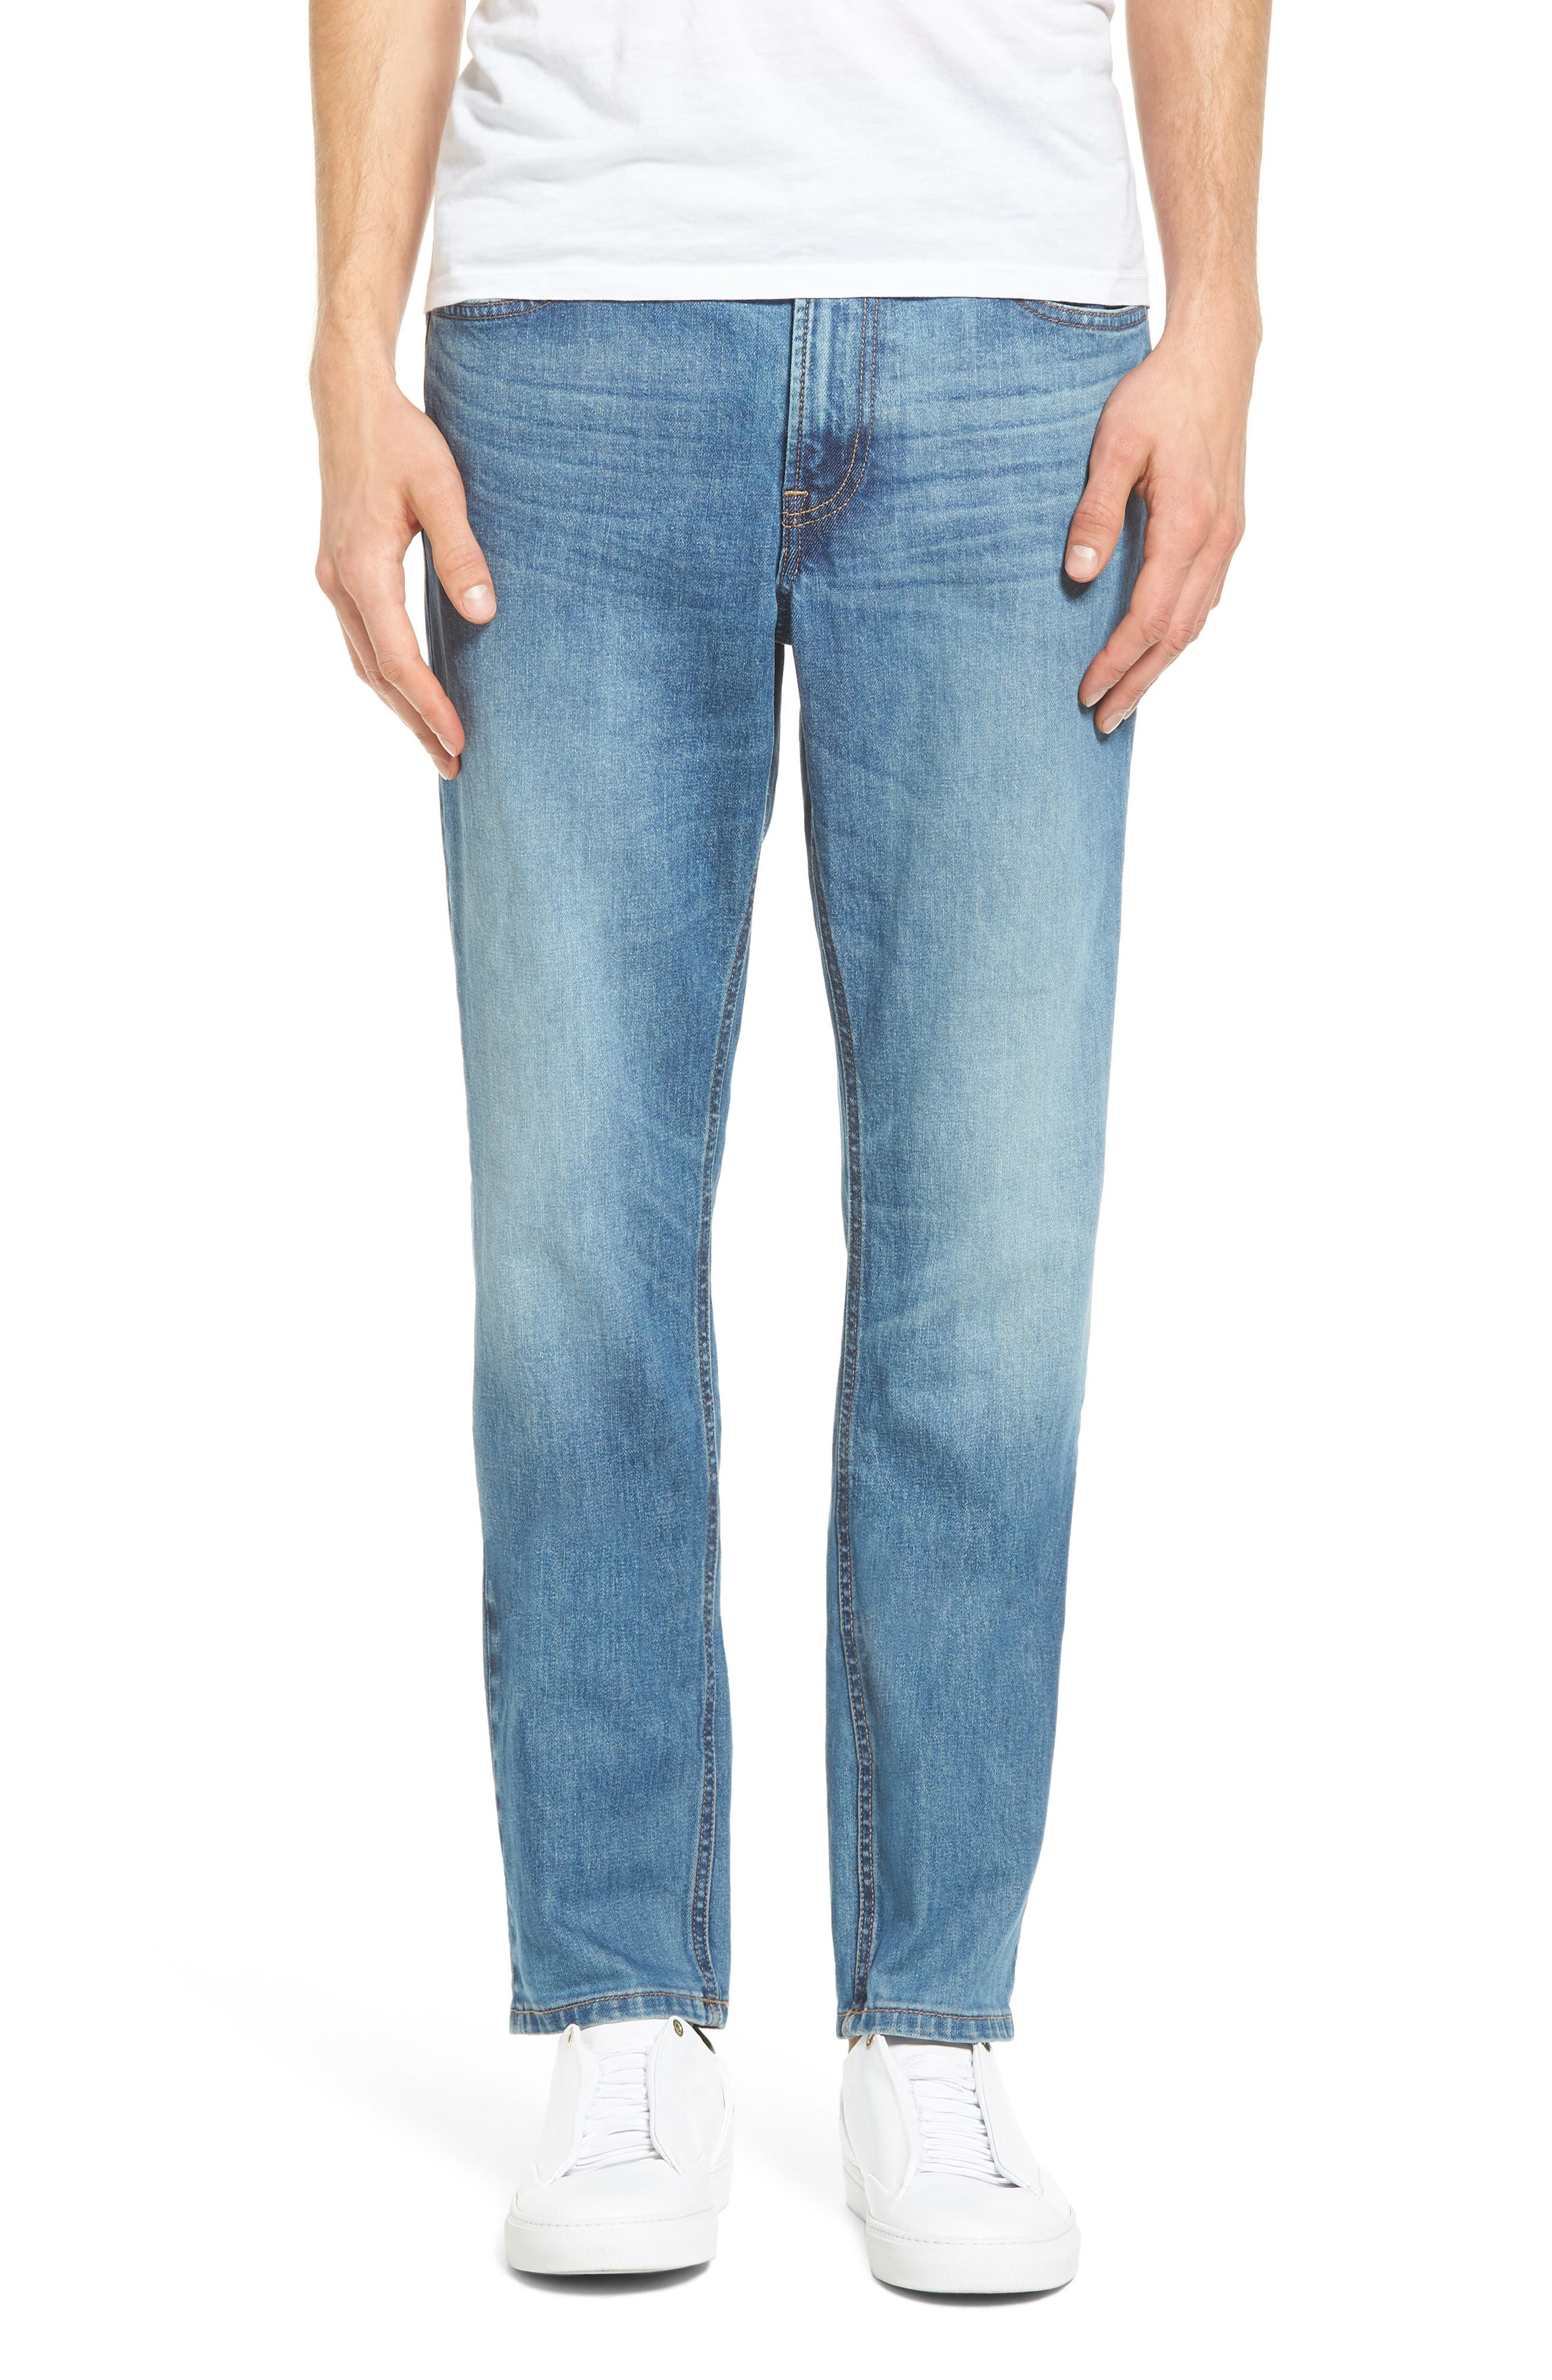 Alternate Image 1 Selected - Everlane The Slim Fit Jeans